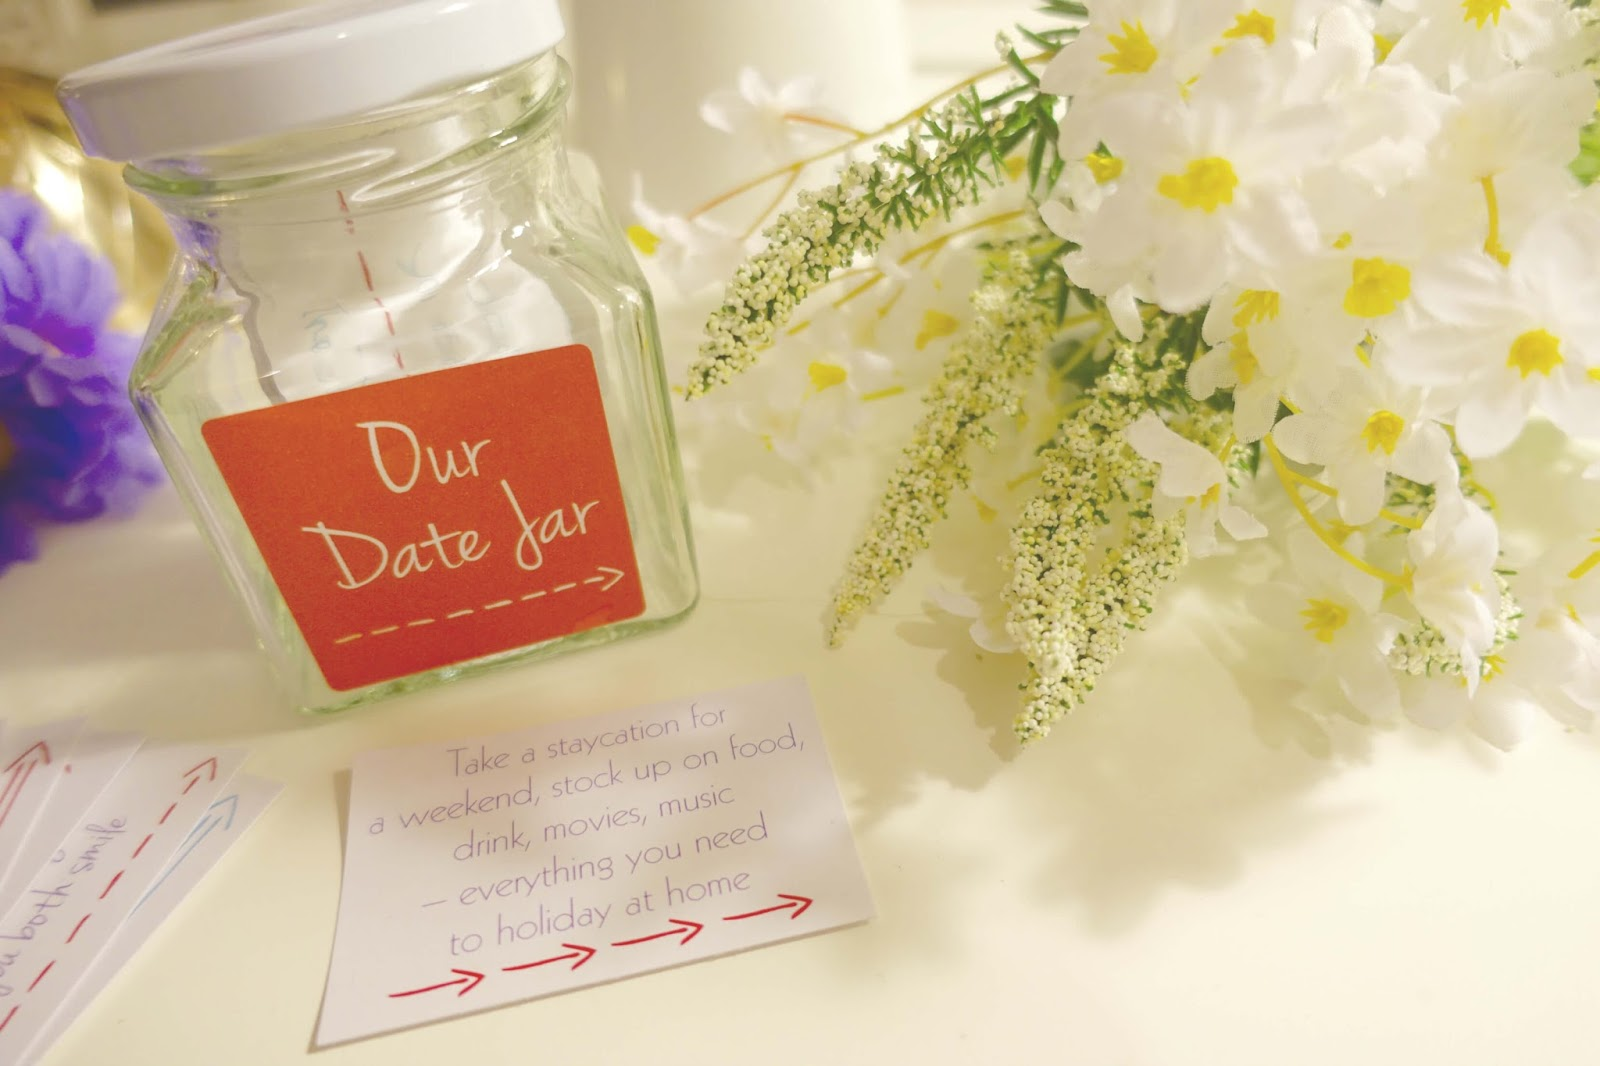 Date jar from notonthehighstreet